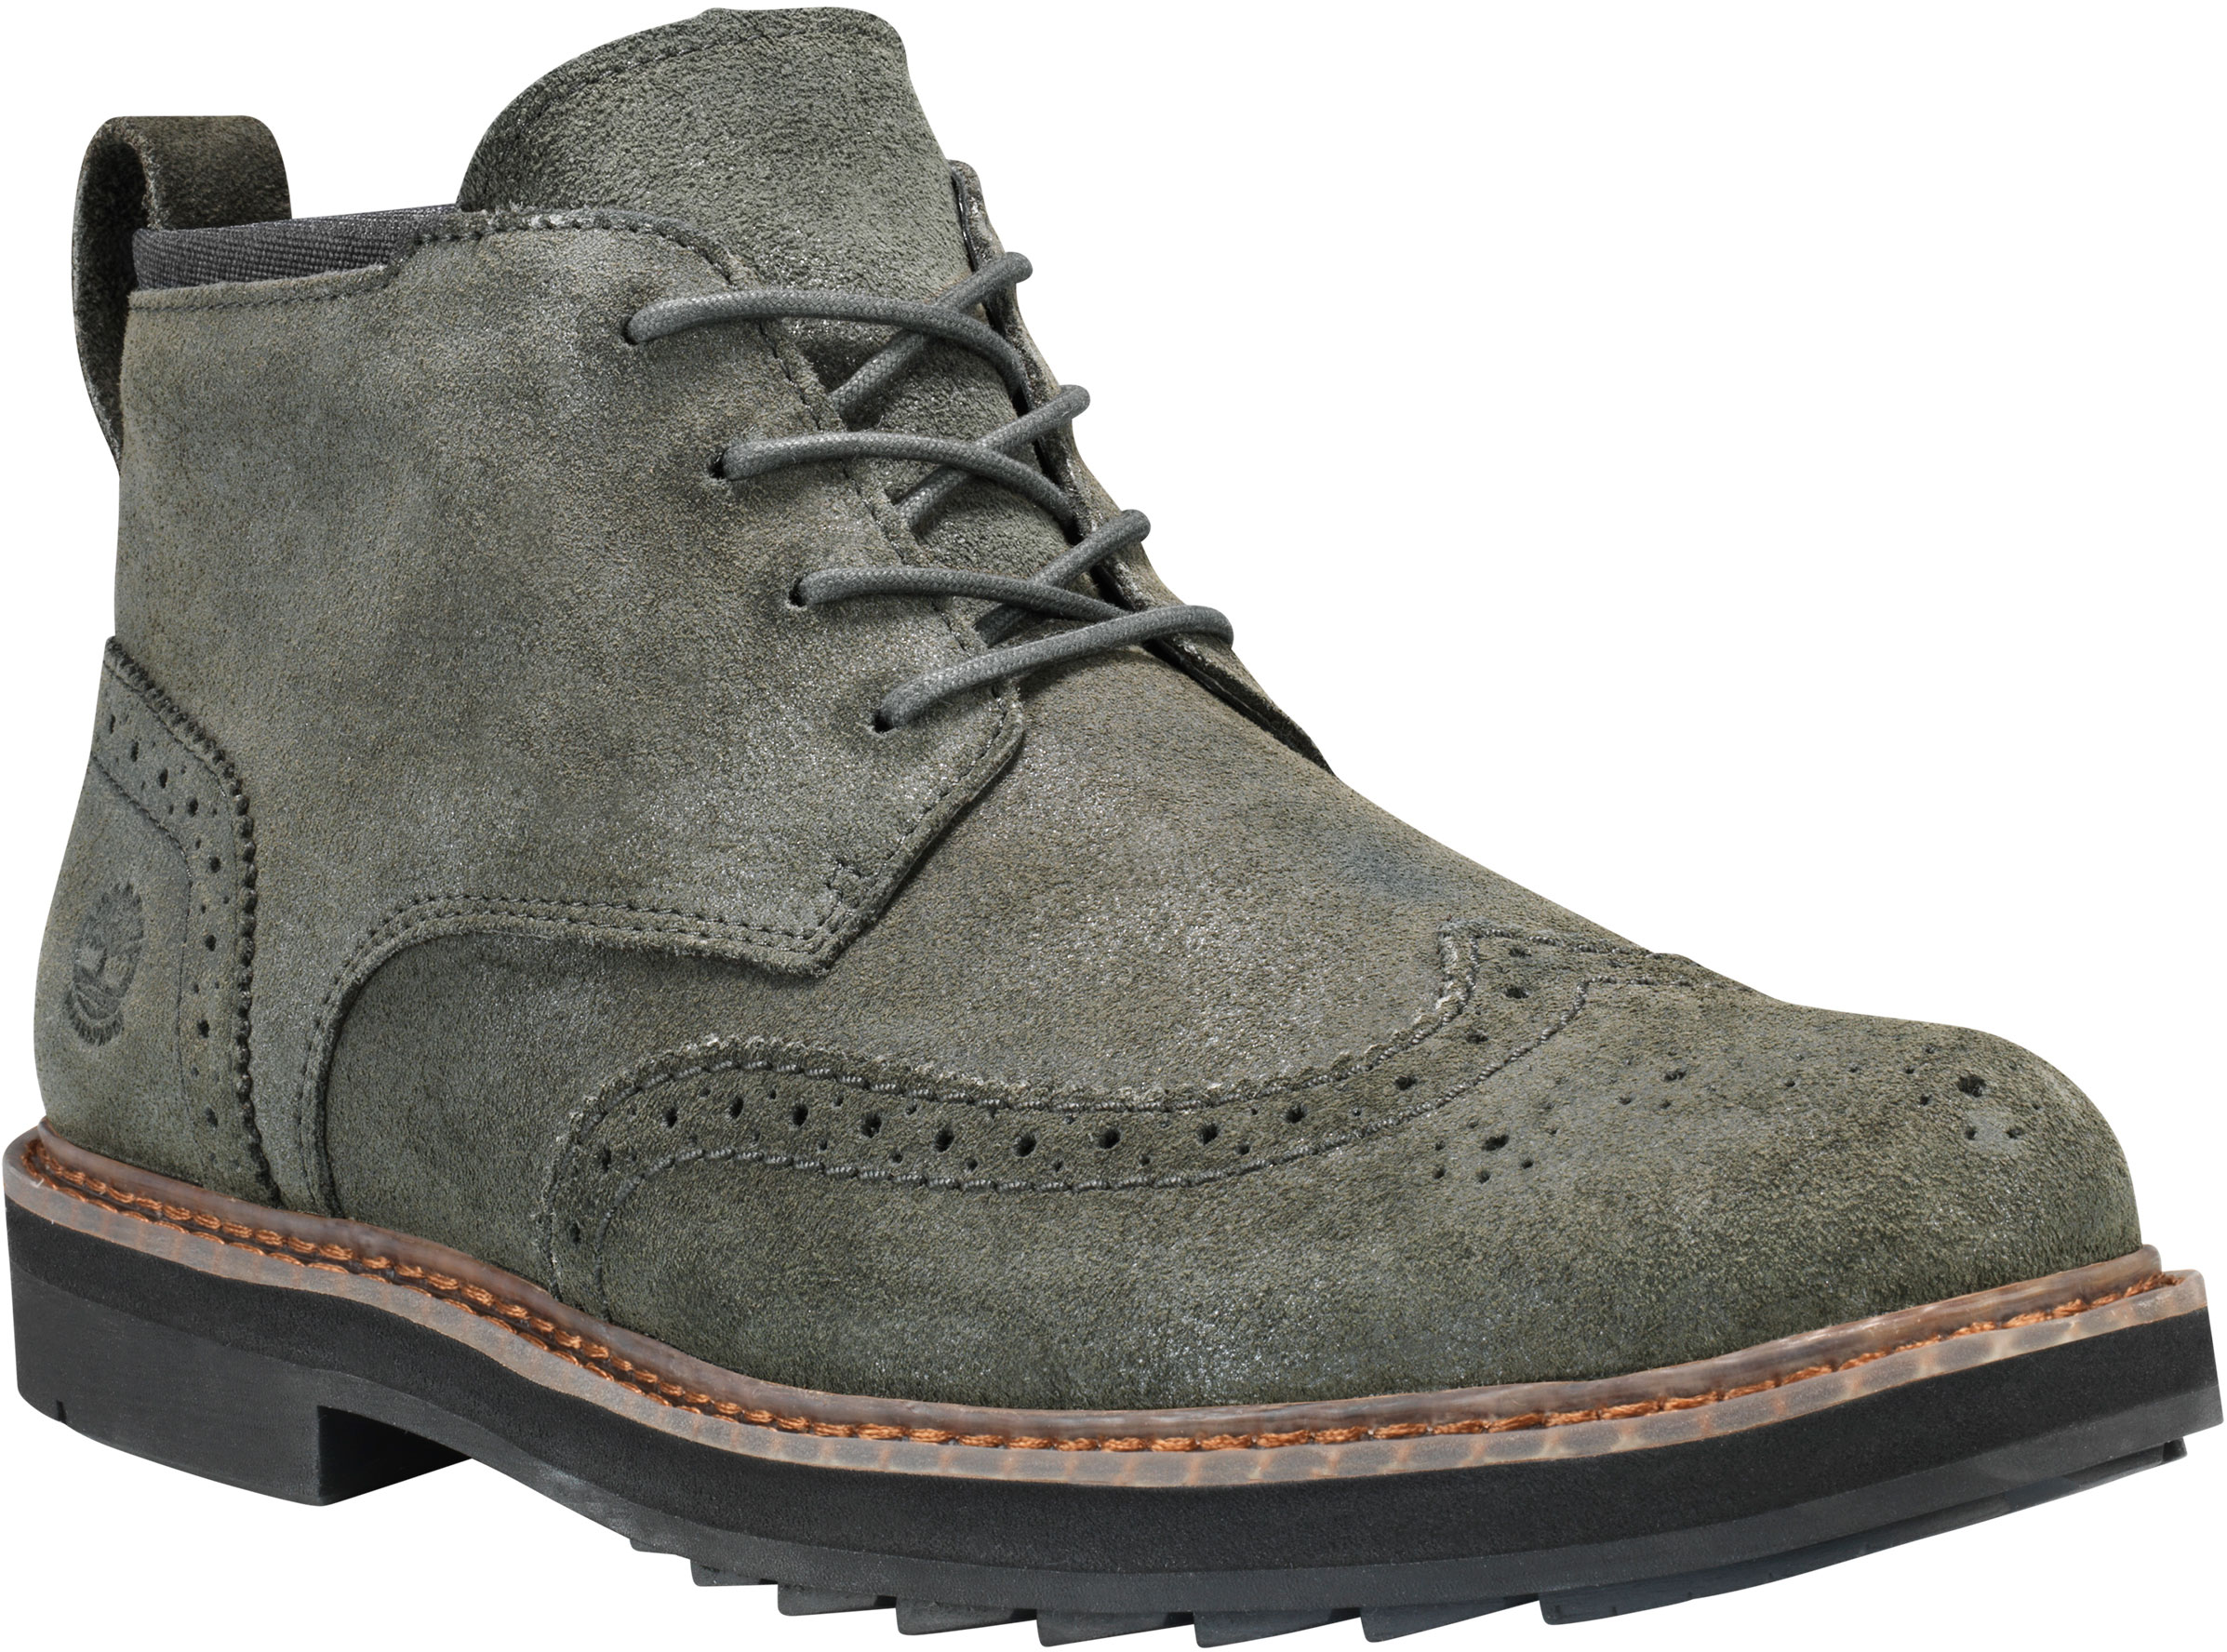 official price most desirable fashion order Timberland Men's TB0A1SV4P01 Squall Canyon Wingtip Waterproof Chukka